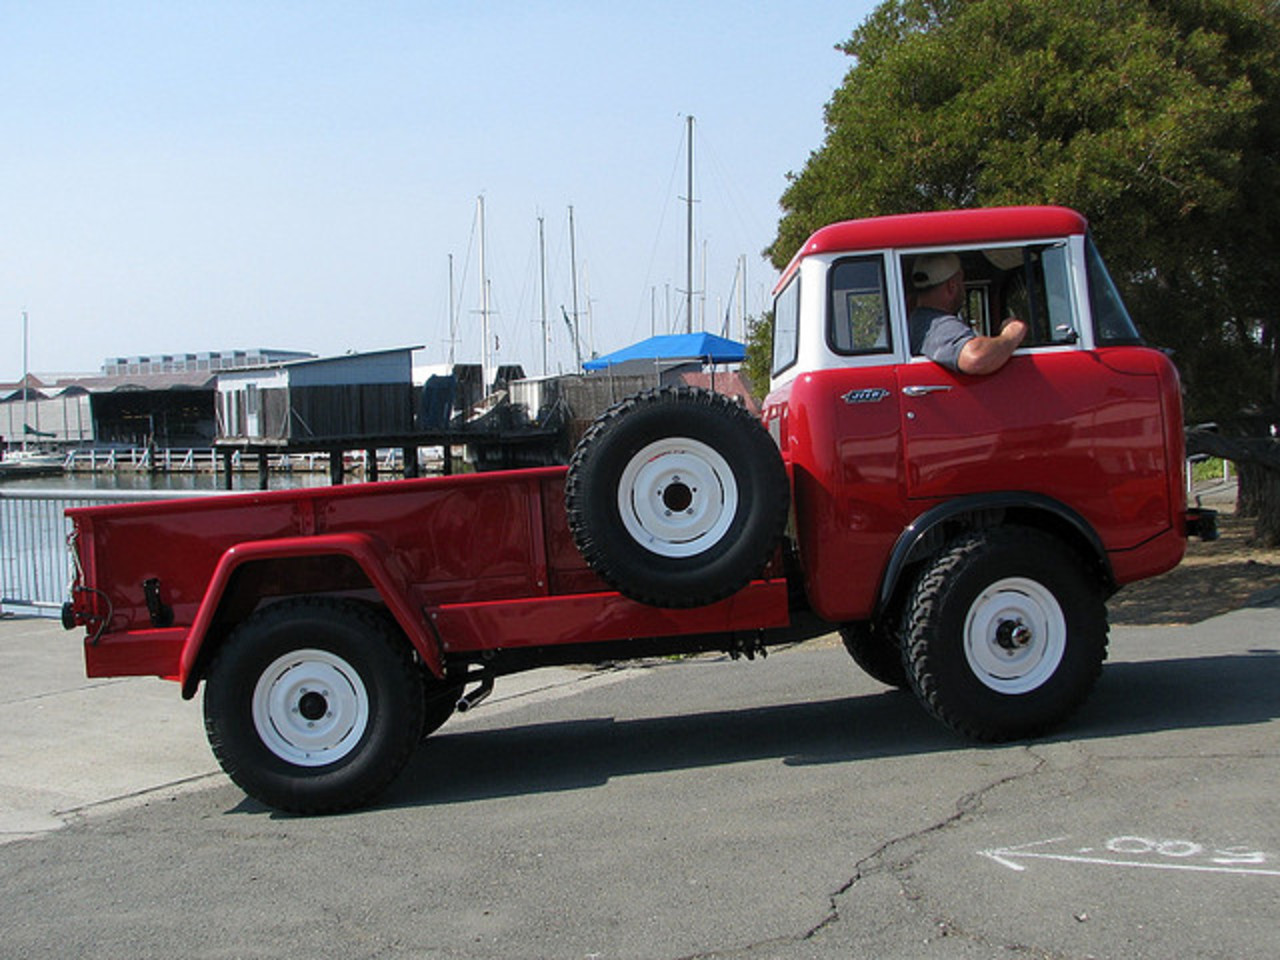 1960 Willys Jeep FC 170 C.O.E. Truck 'W 36 395' 6 | Flickr - Photo ...